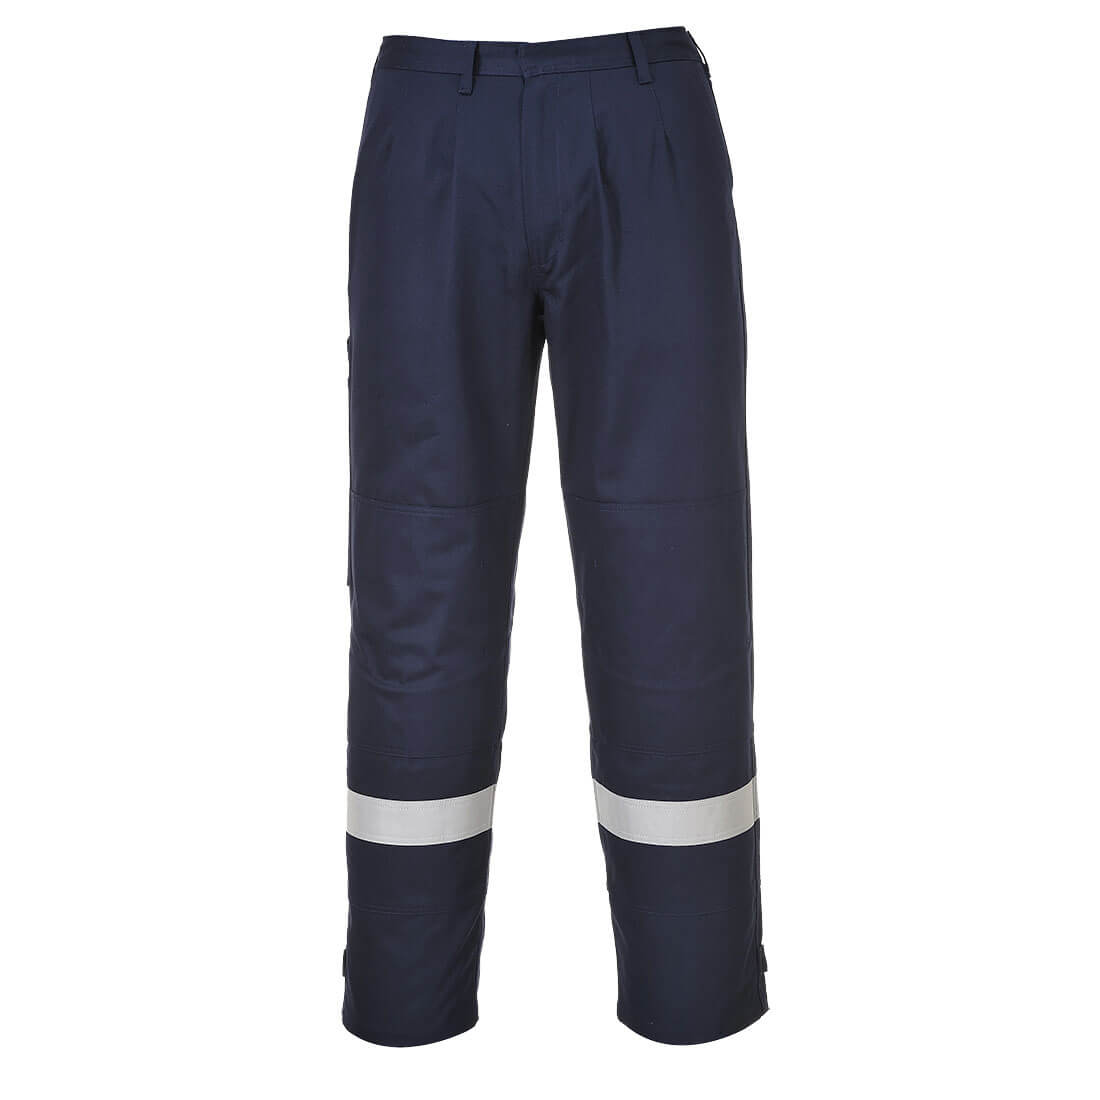 """Image of Biz Flame Plus Mens Flame Resistant Trousers Navy Blue 3XL 32"""""""